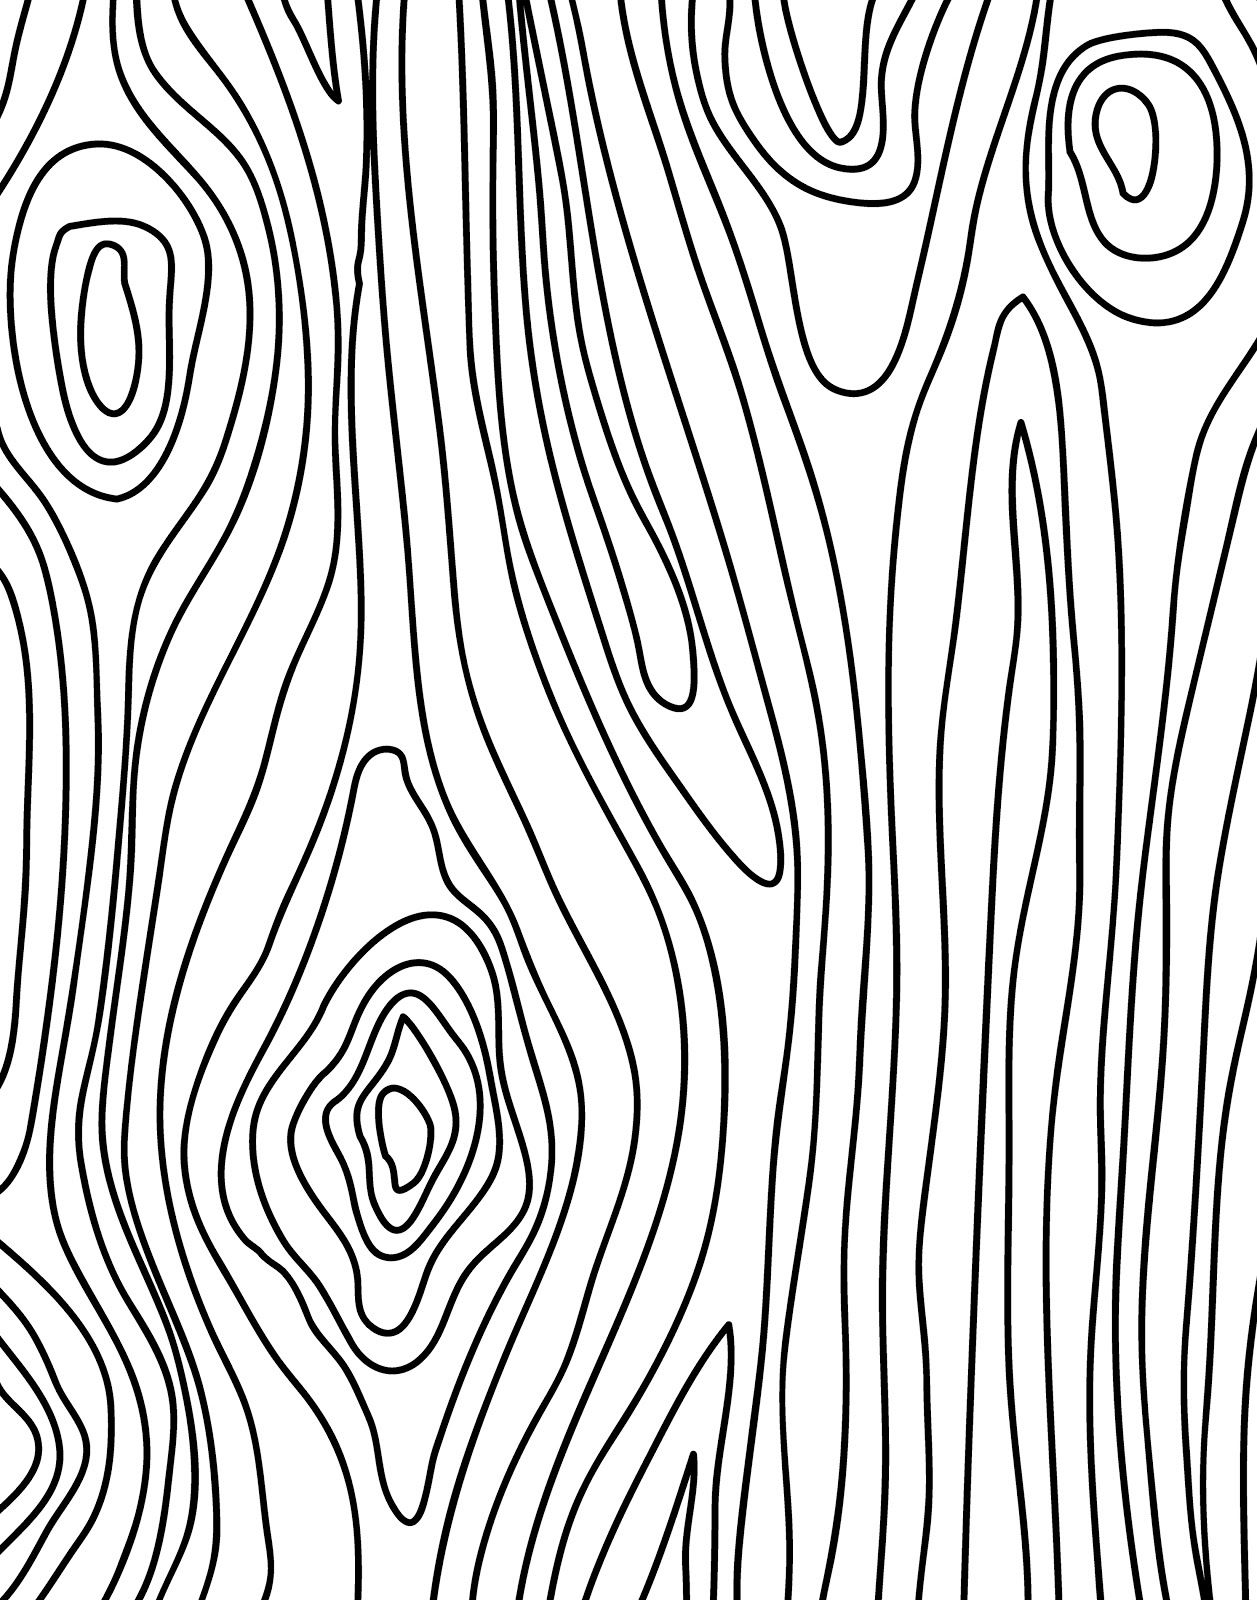 Uncategorized How To Draw Wood Texture diy upcycled home decor and kids crafts galore i love sci fi 11 different faux boiswood grain printables